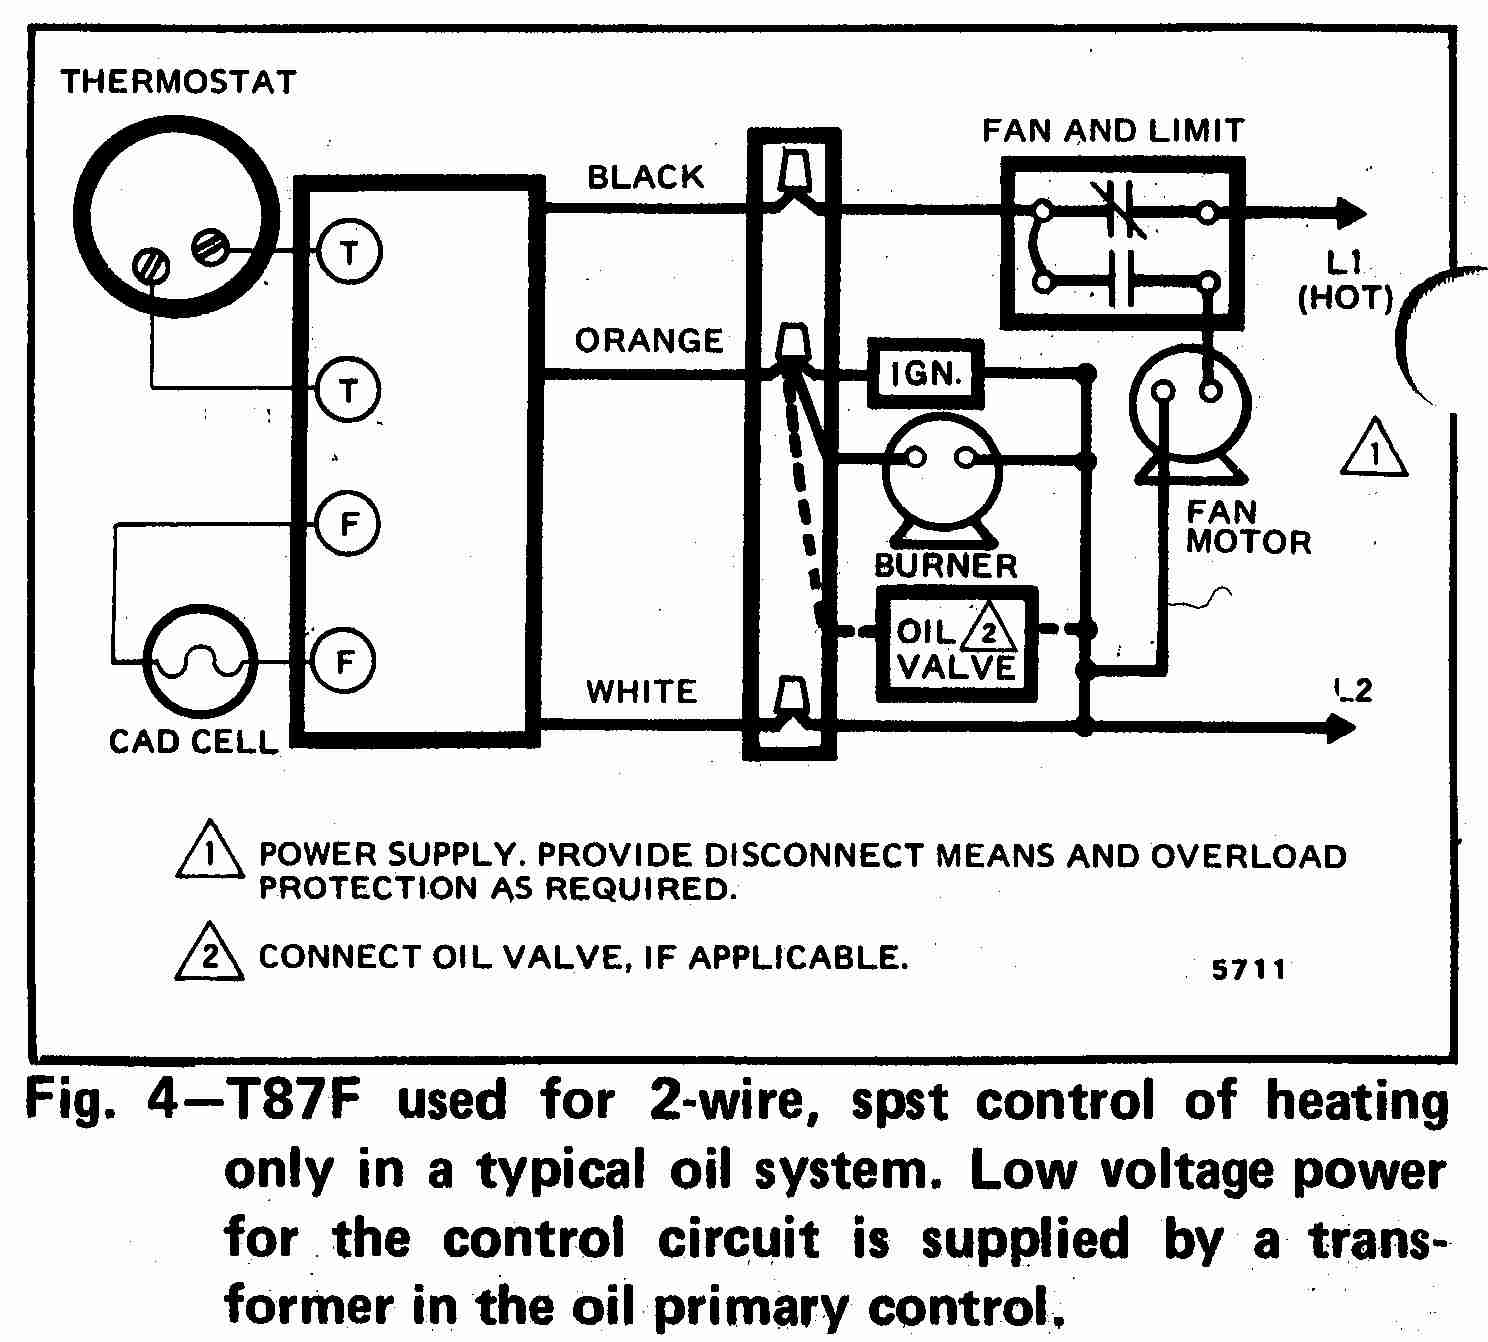 Modine Fan Wiring Diagram Simple Photos For Help Your Working Heater